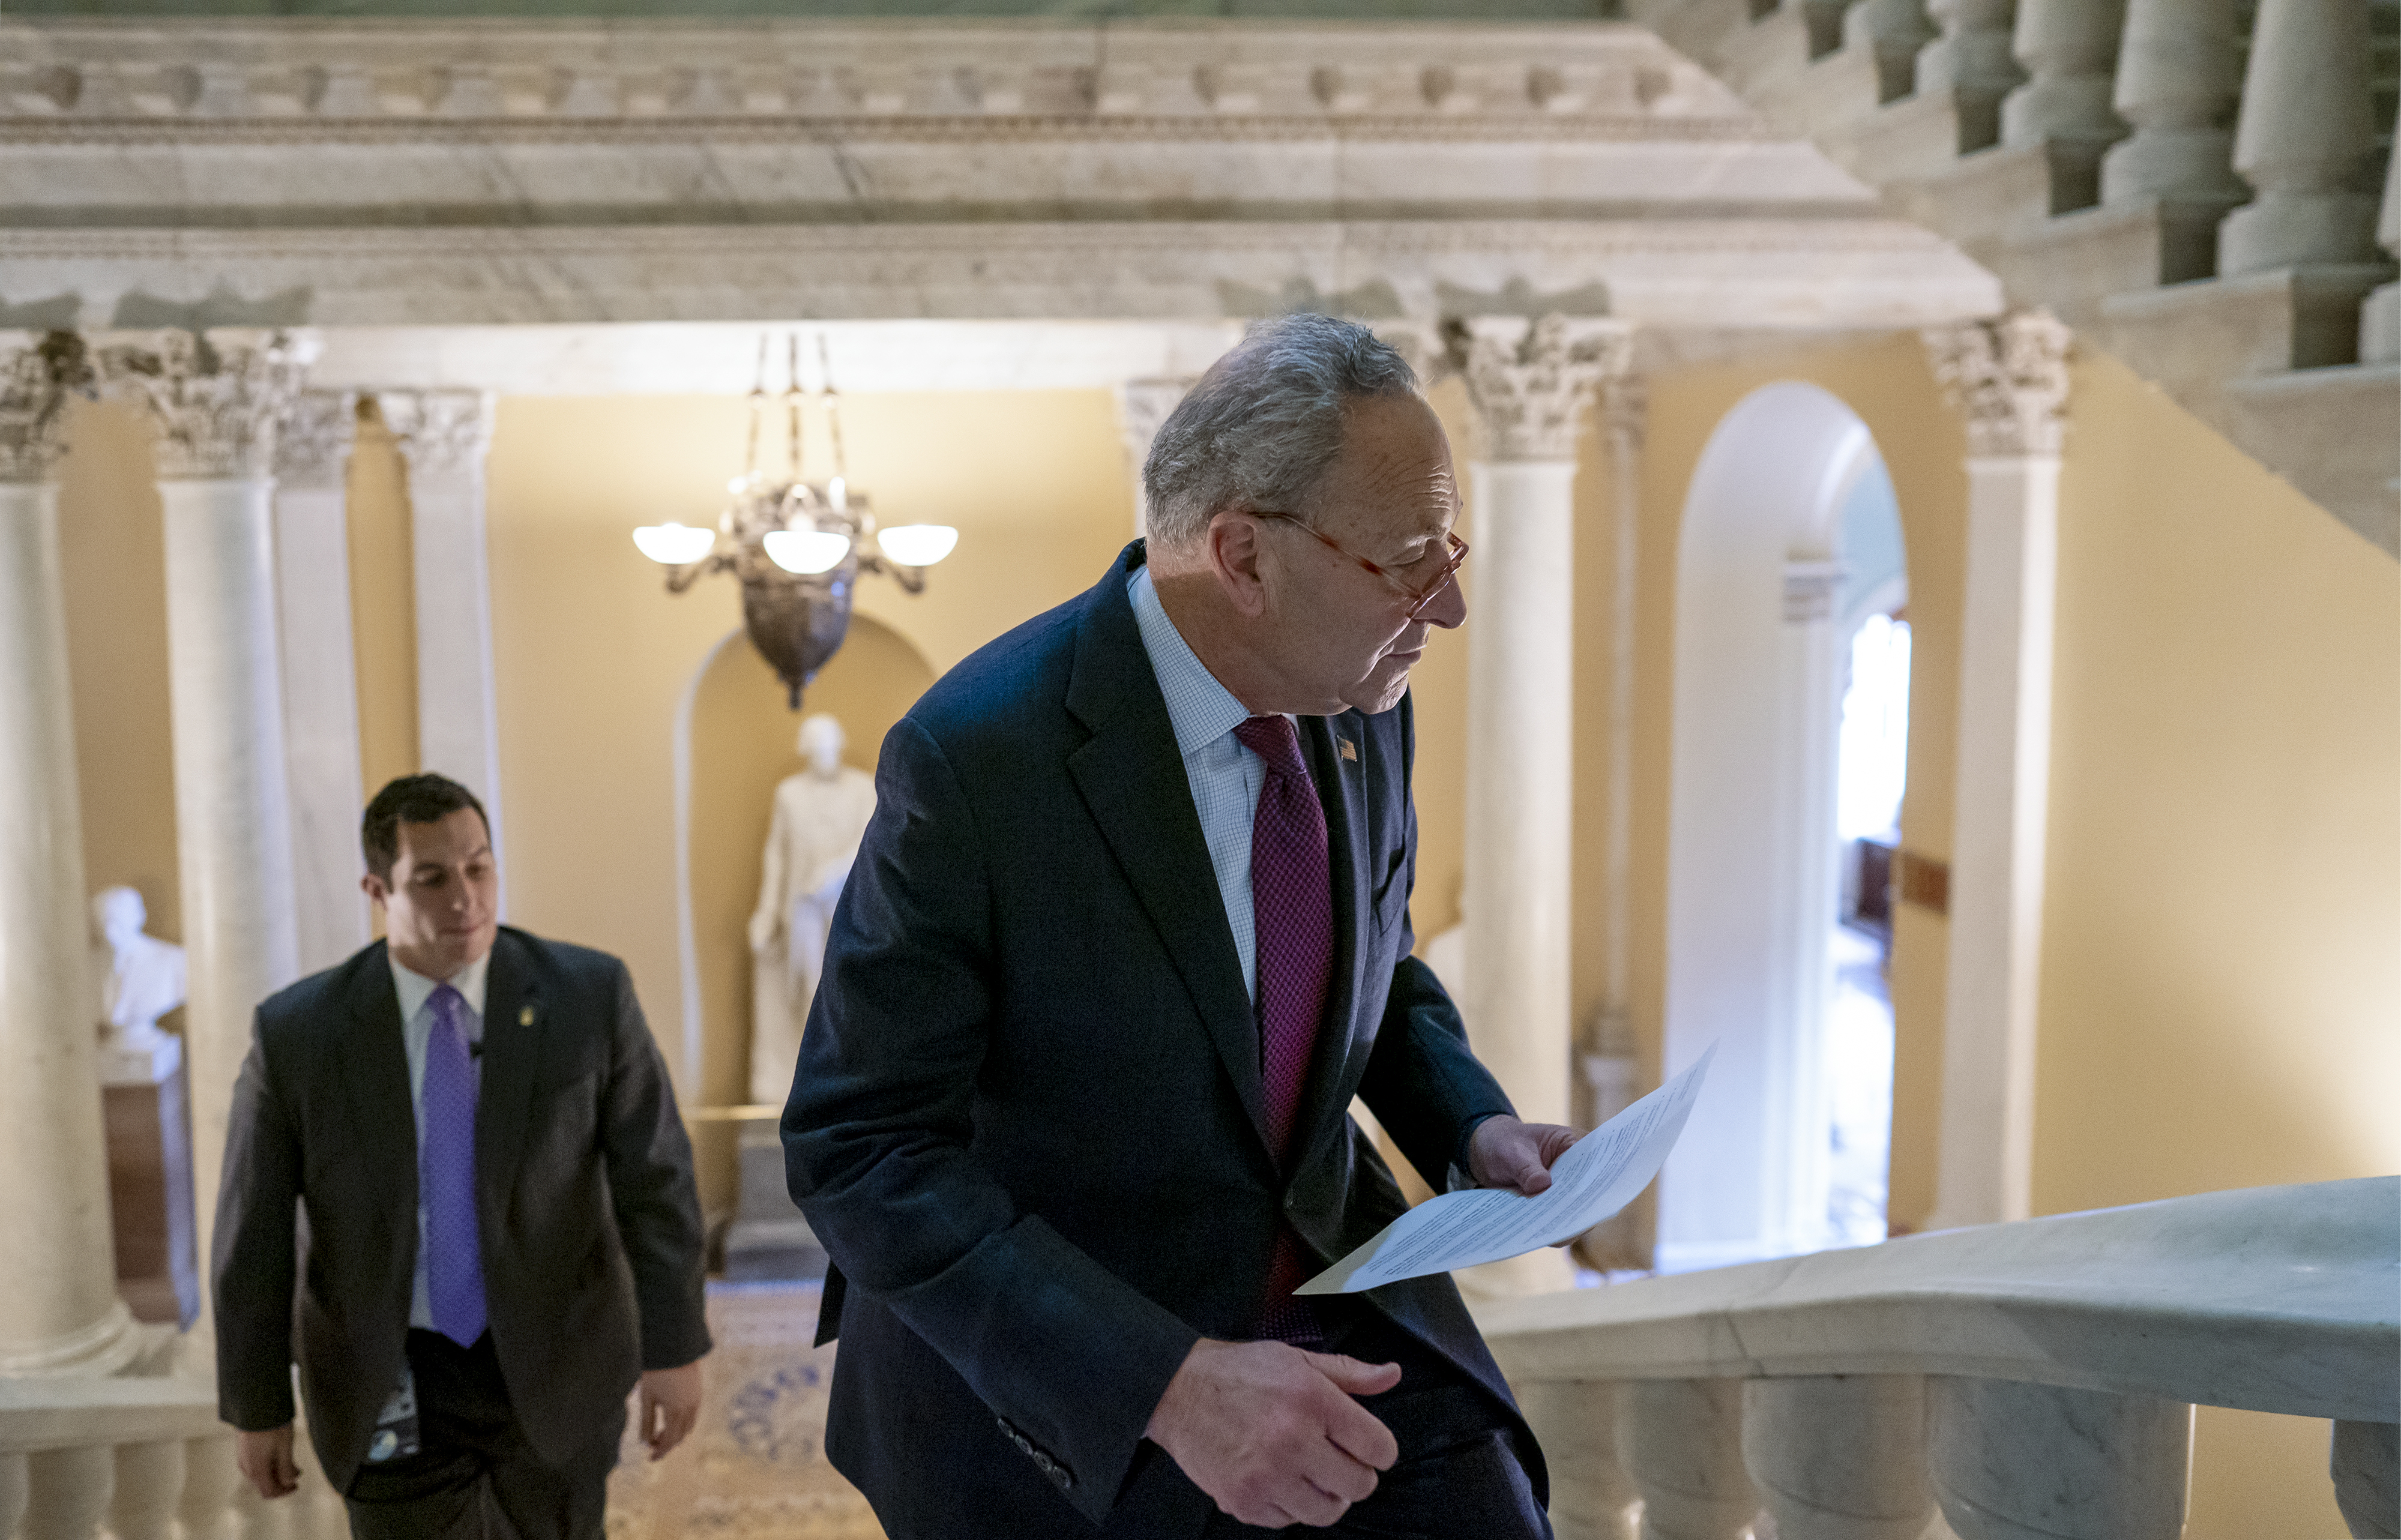 Schumer demands Bolton testify at impeachment trial: 'Who knows what he'll say under oath'